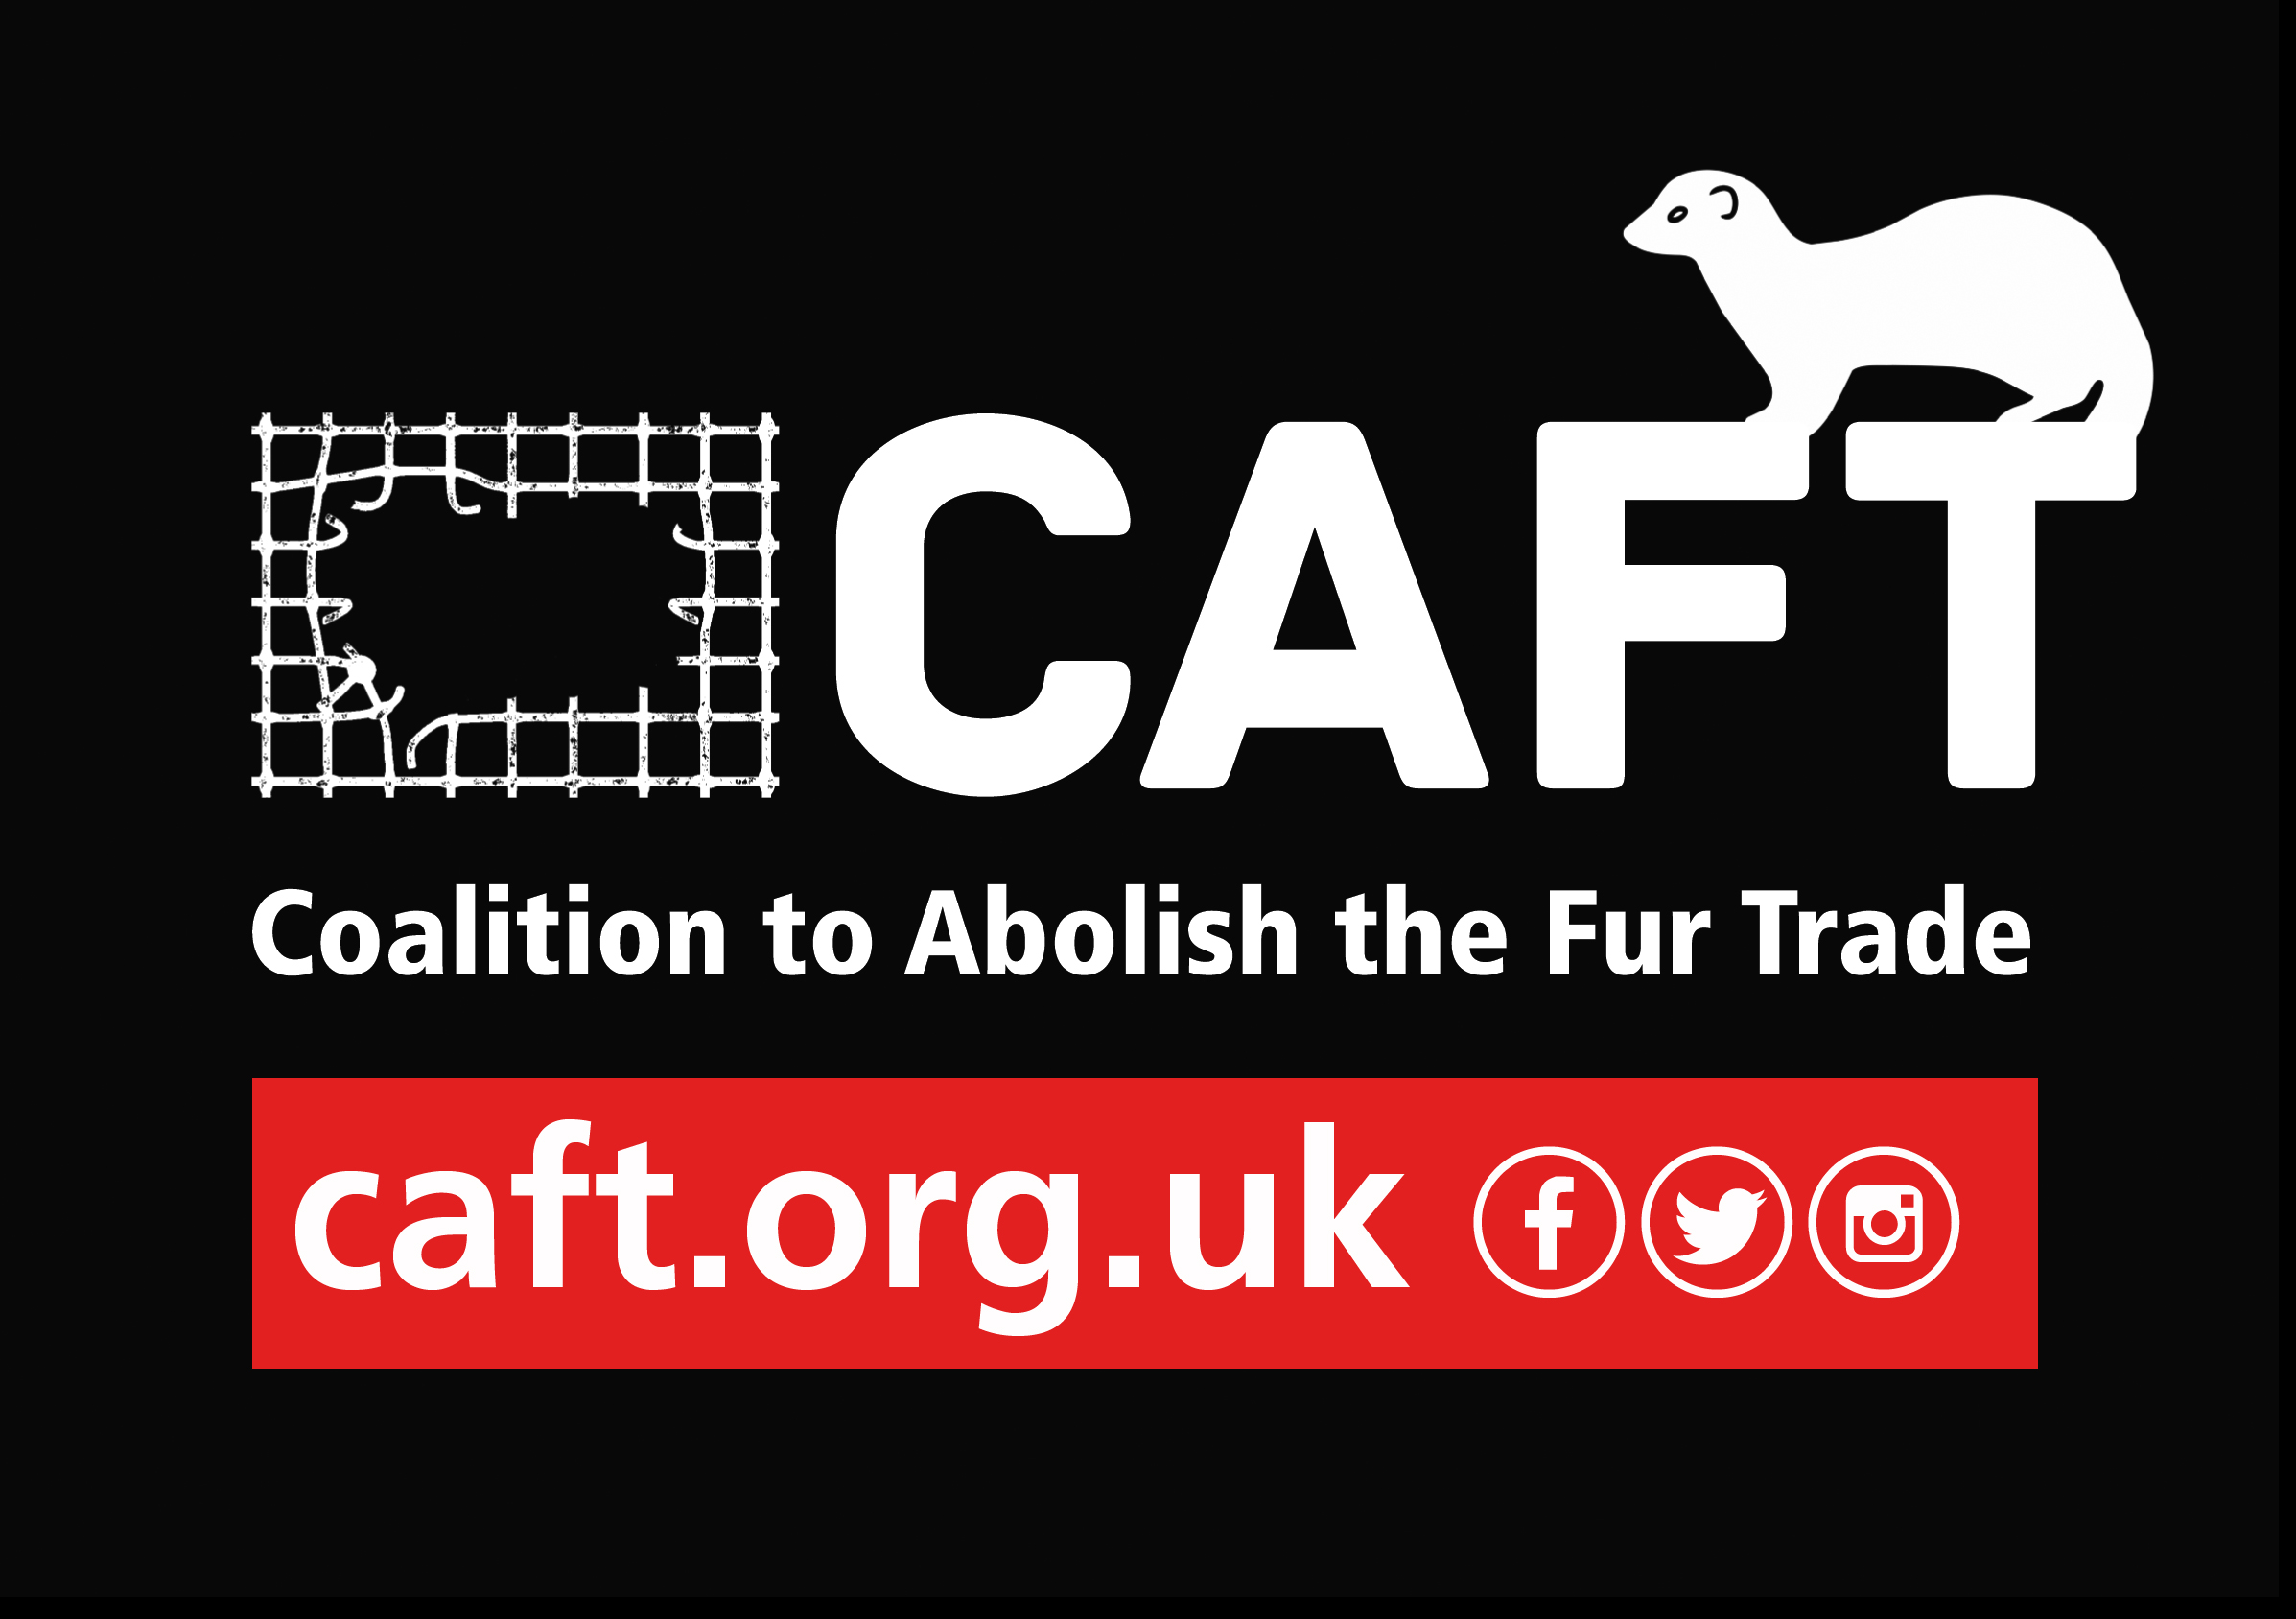 CAFT has helped regenerate the grass-roots campaign against the fur trade throughout the UK. Through investigations, education, campaigns and demonstrations we have exposed the horror of the fur trade and helped establish and continue many anti-fur actions across Britain.